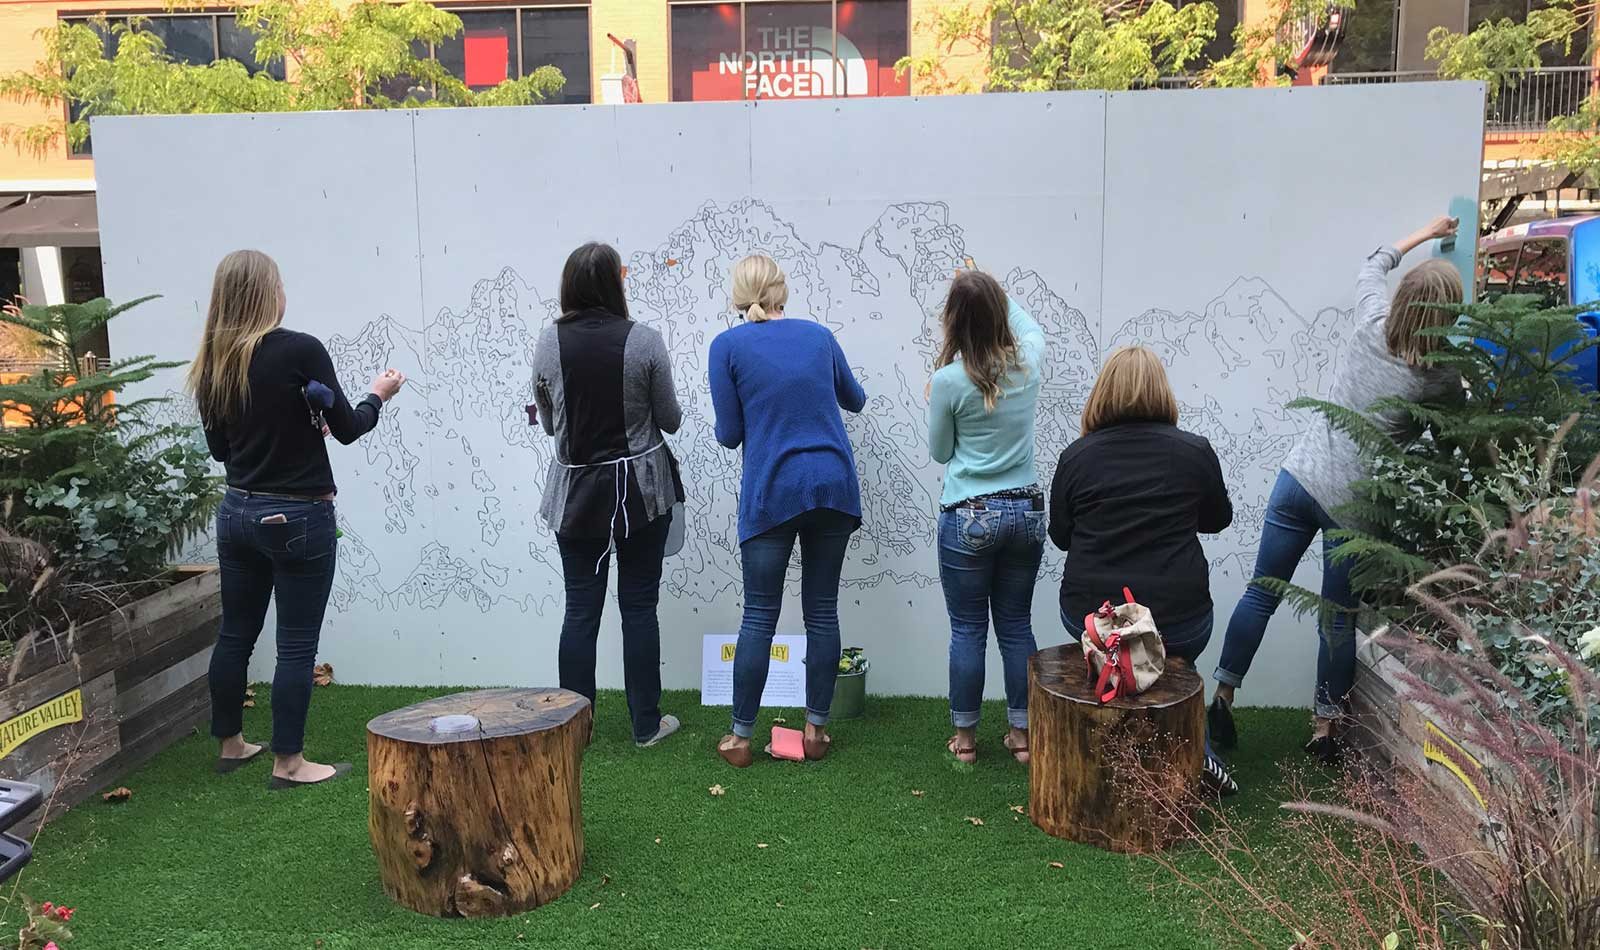 Experiential Marketing for Nature Valley